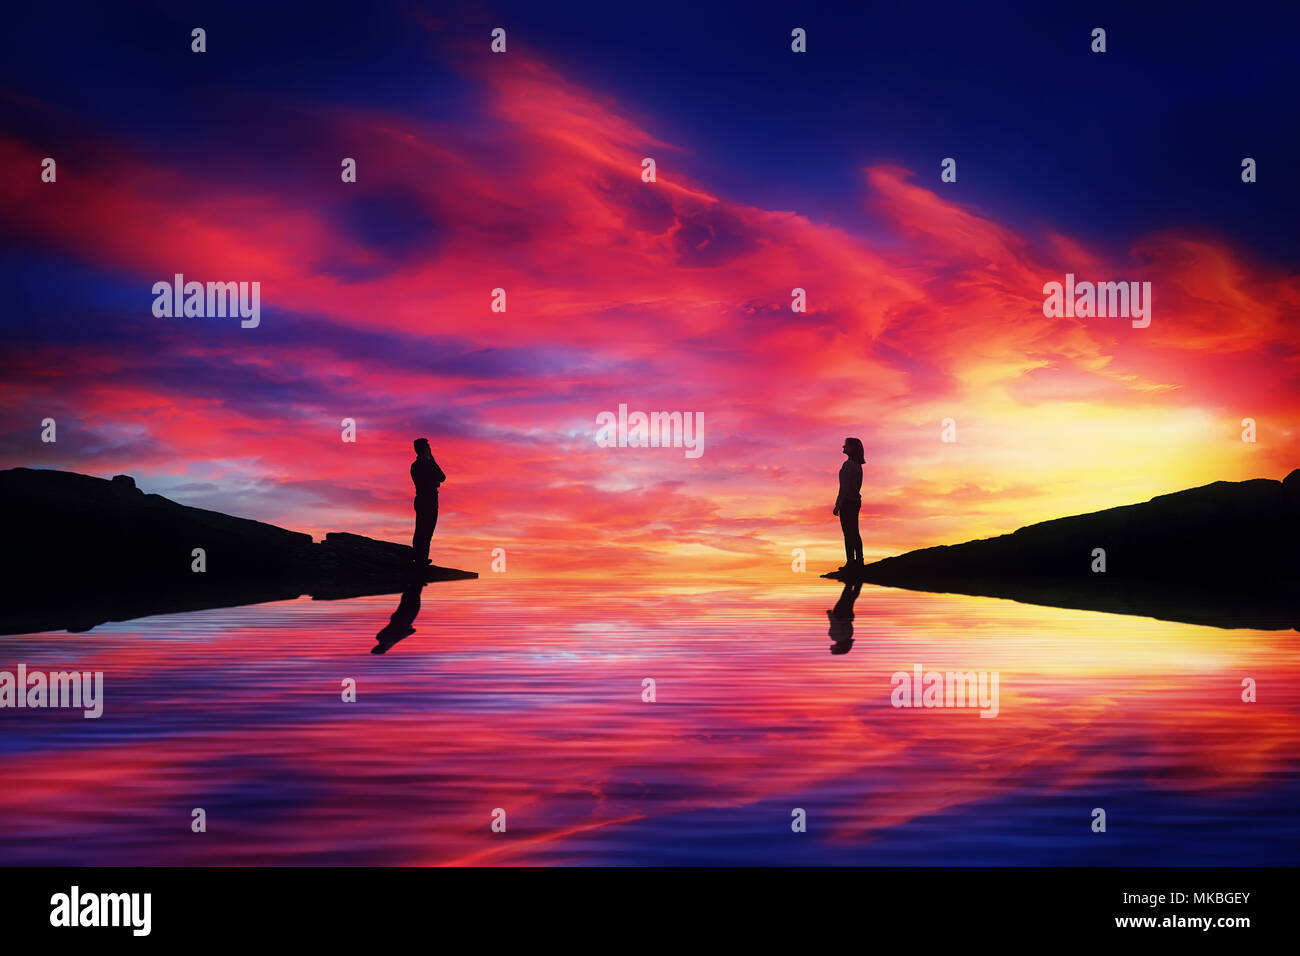 A boy and a girl stand on different sides of a river think how to reach each other over a beautiful sunset background. Building an imaginary bridge. L - Stock Image